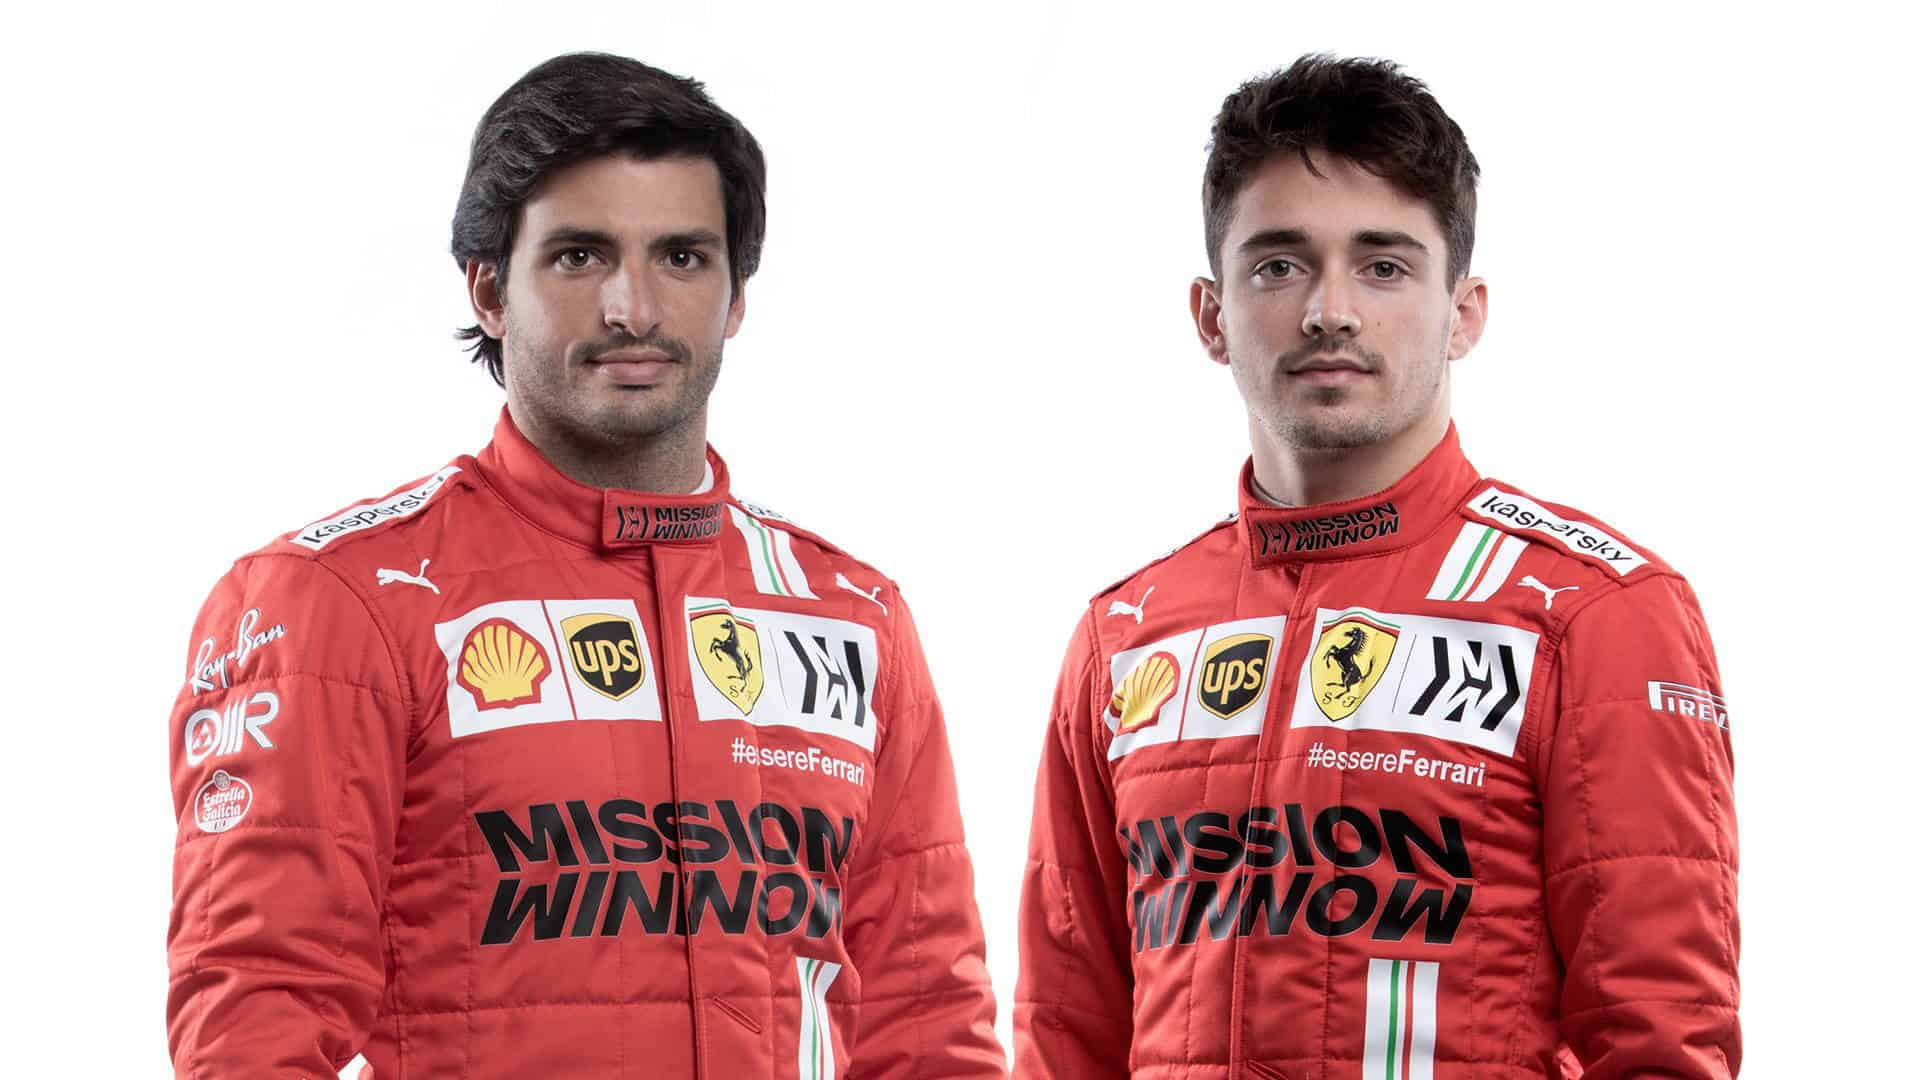 2021 Ferrari team launch February 26 Sainz and Leclerc Photo Ferrari